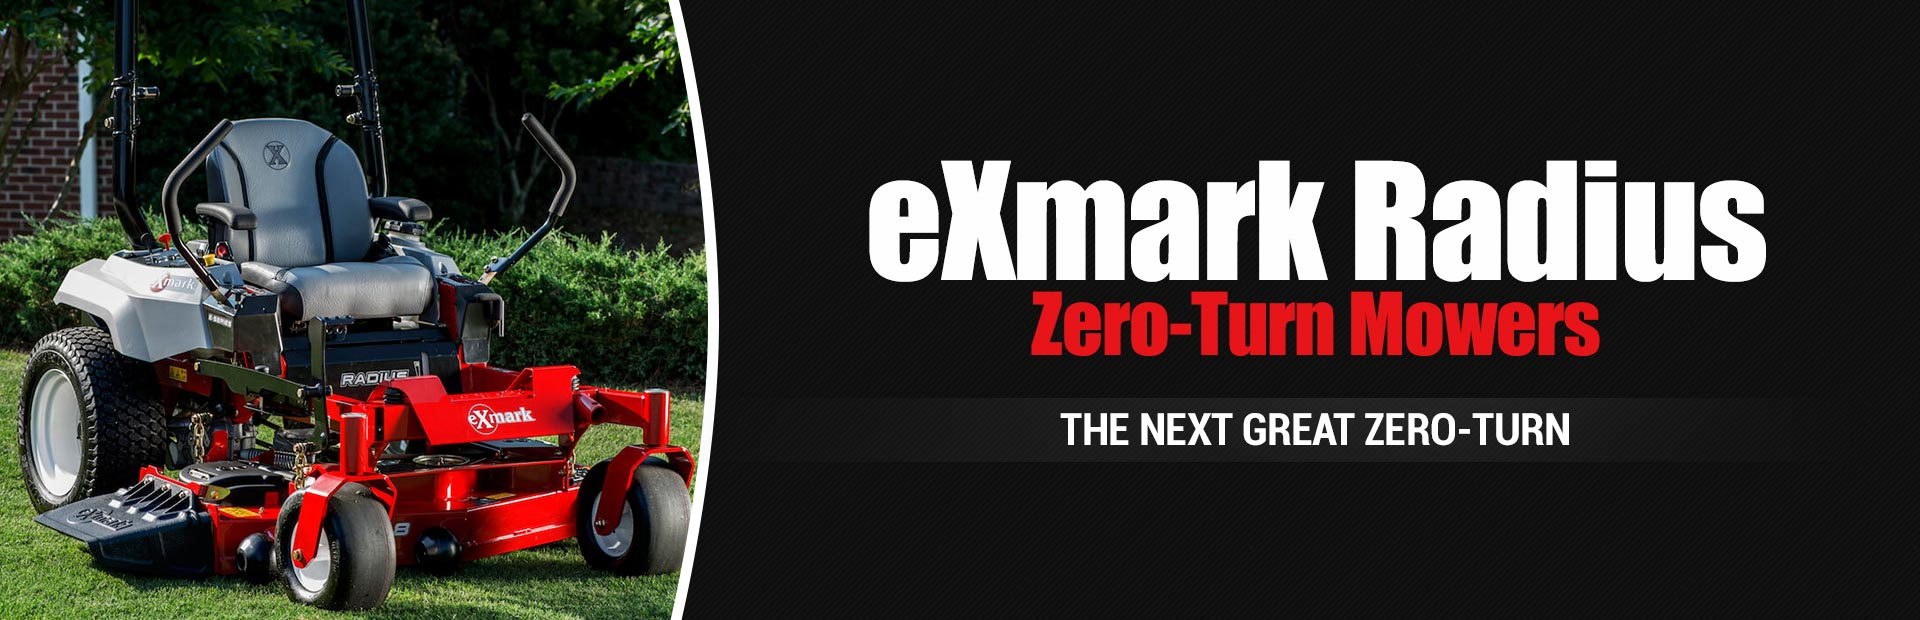 Exmark Radius Zero-Turn Mowers